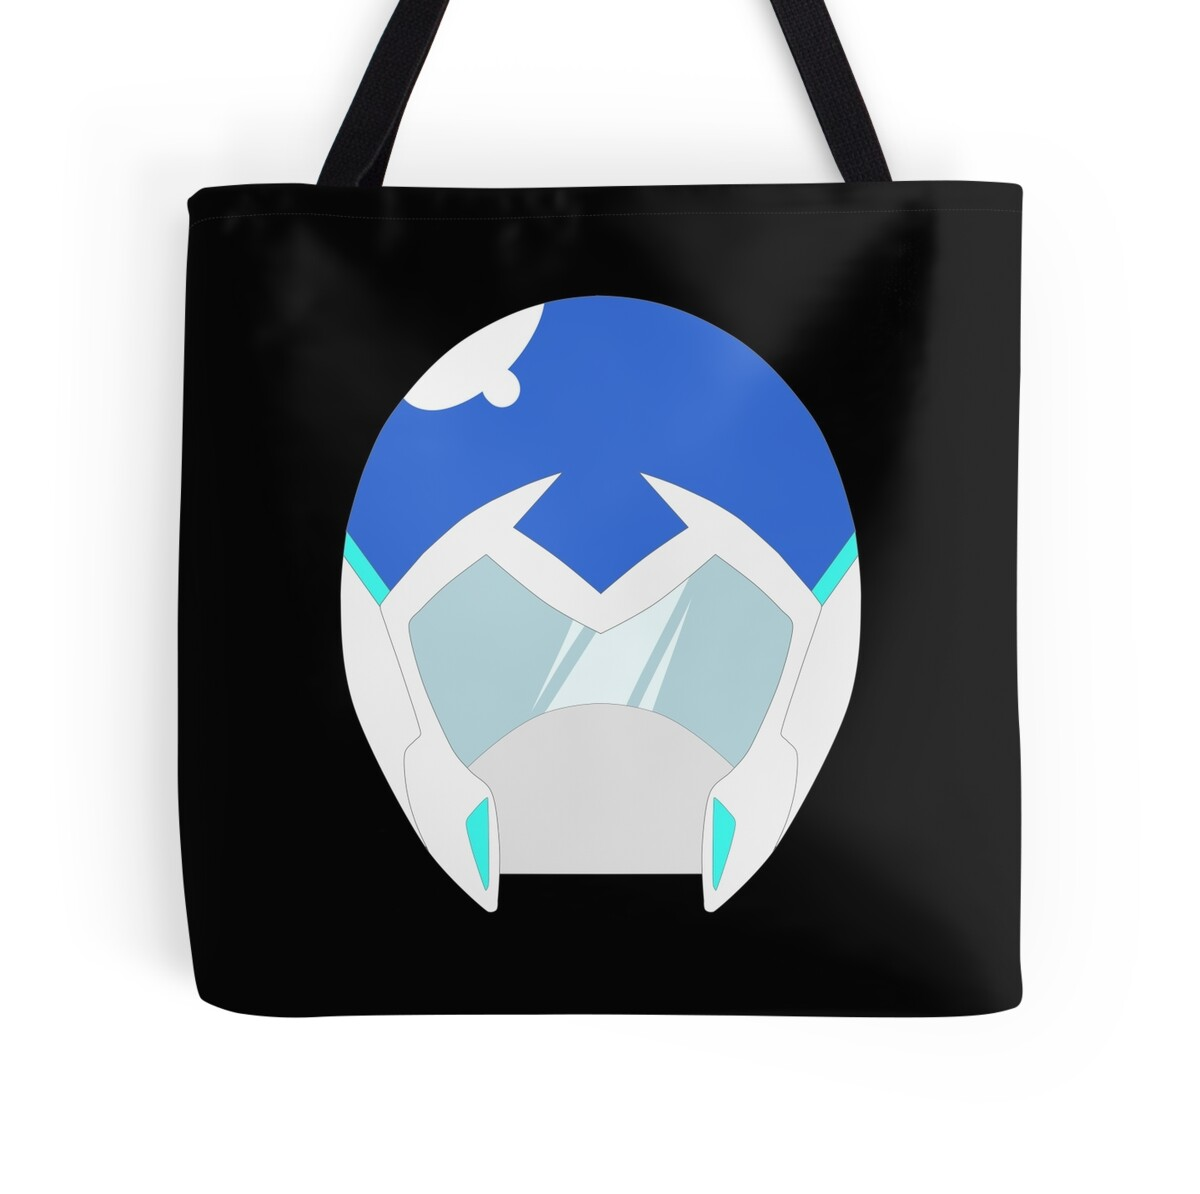 Voltron legendary defender lance tote bags by abominableve voltron legendary defender lance by abominableve biocorpaavc